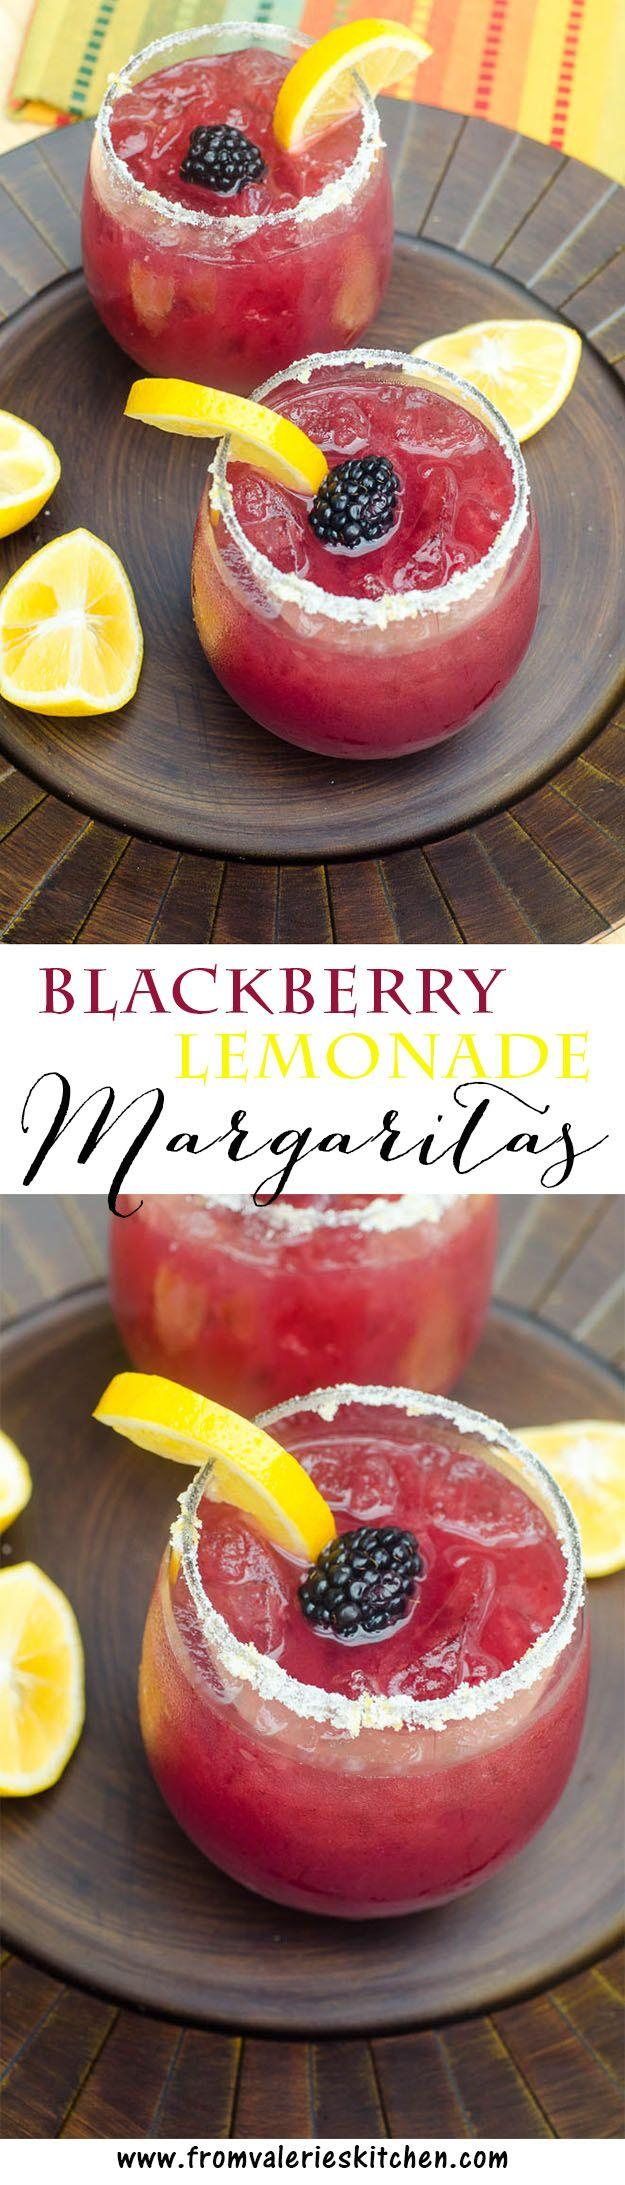 Boda - Blackberry Lemonade Margaritas